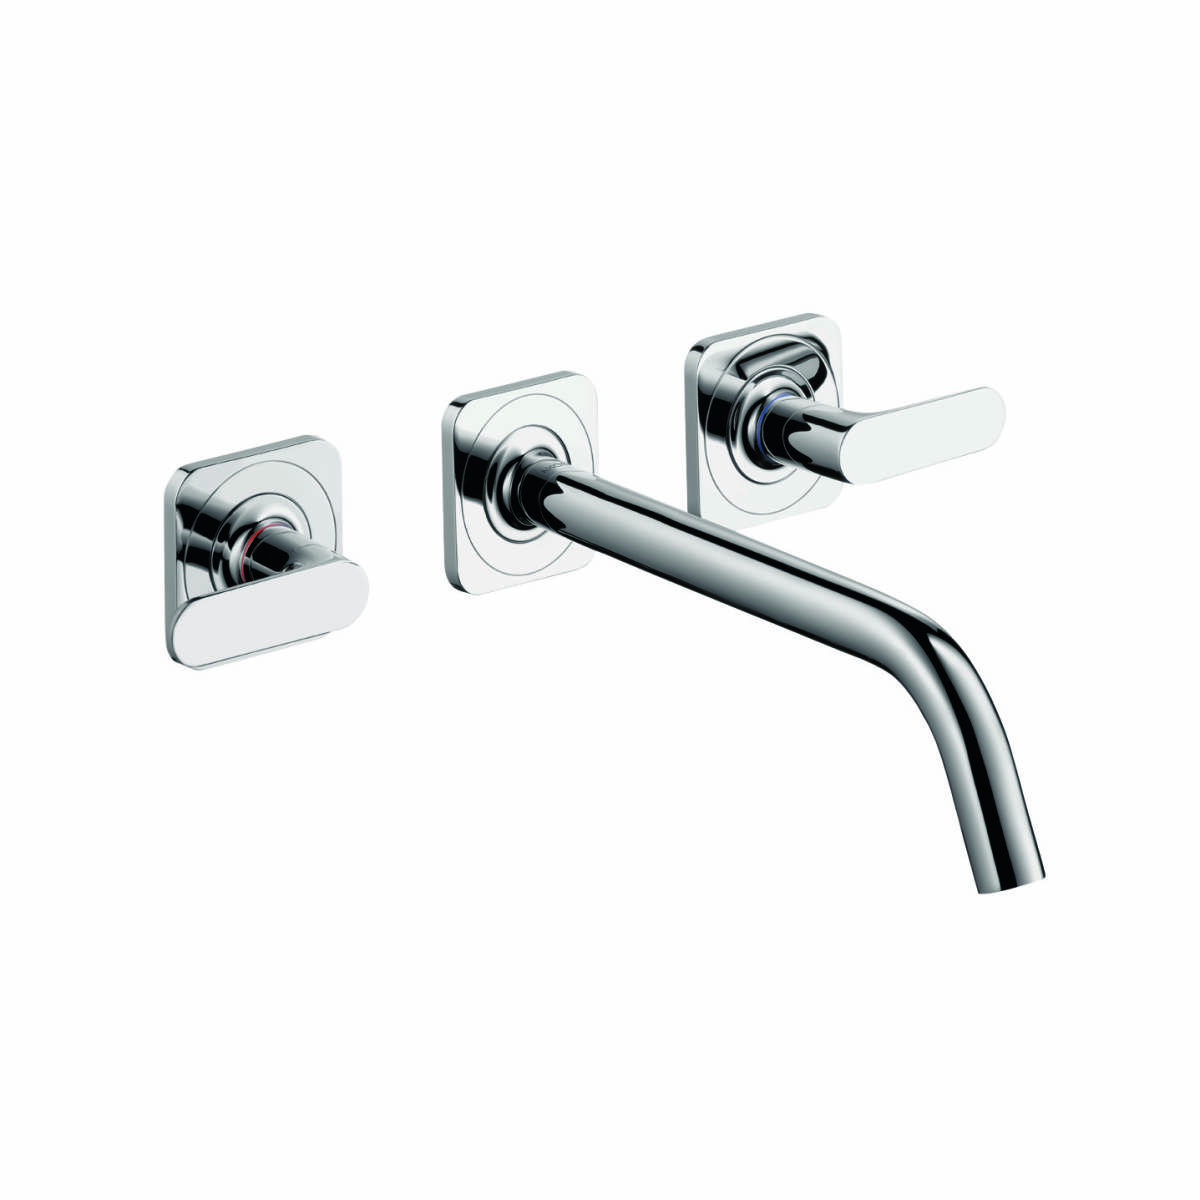 3-hole basin mixer for concealed installation with spout 226 mm, lever handles and escutcheons wall-mounted, Brushed Nickel, 34315820